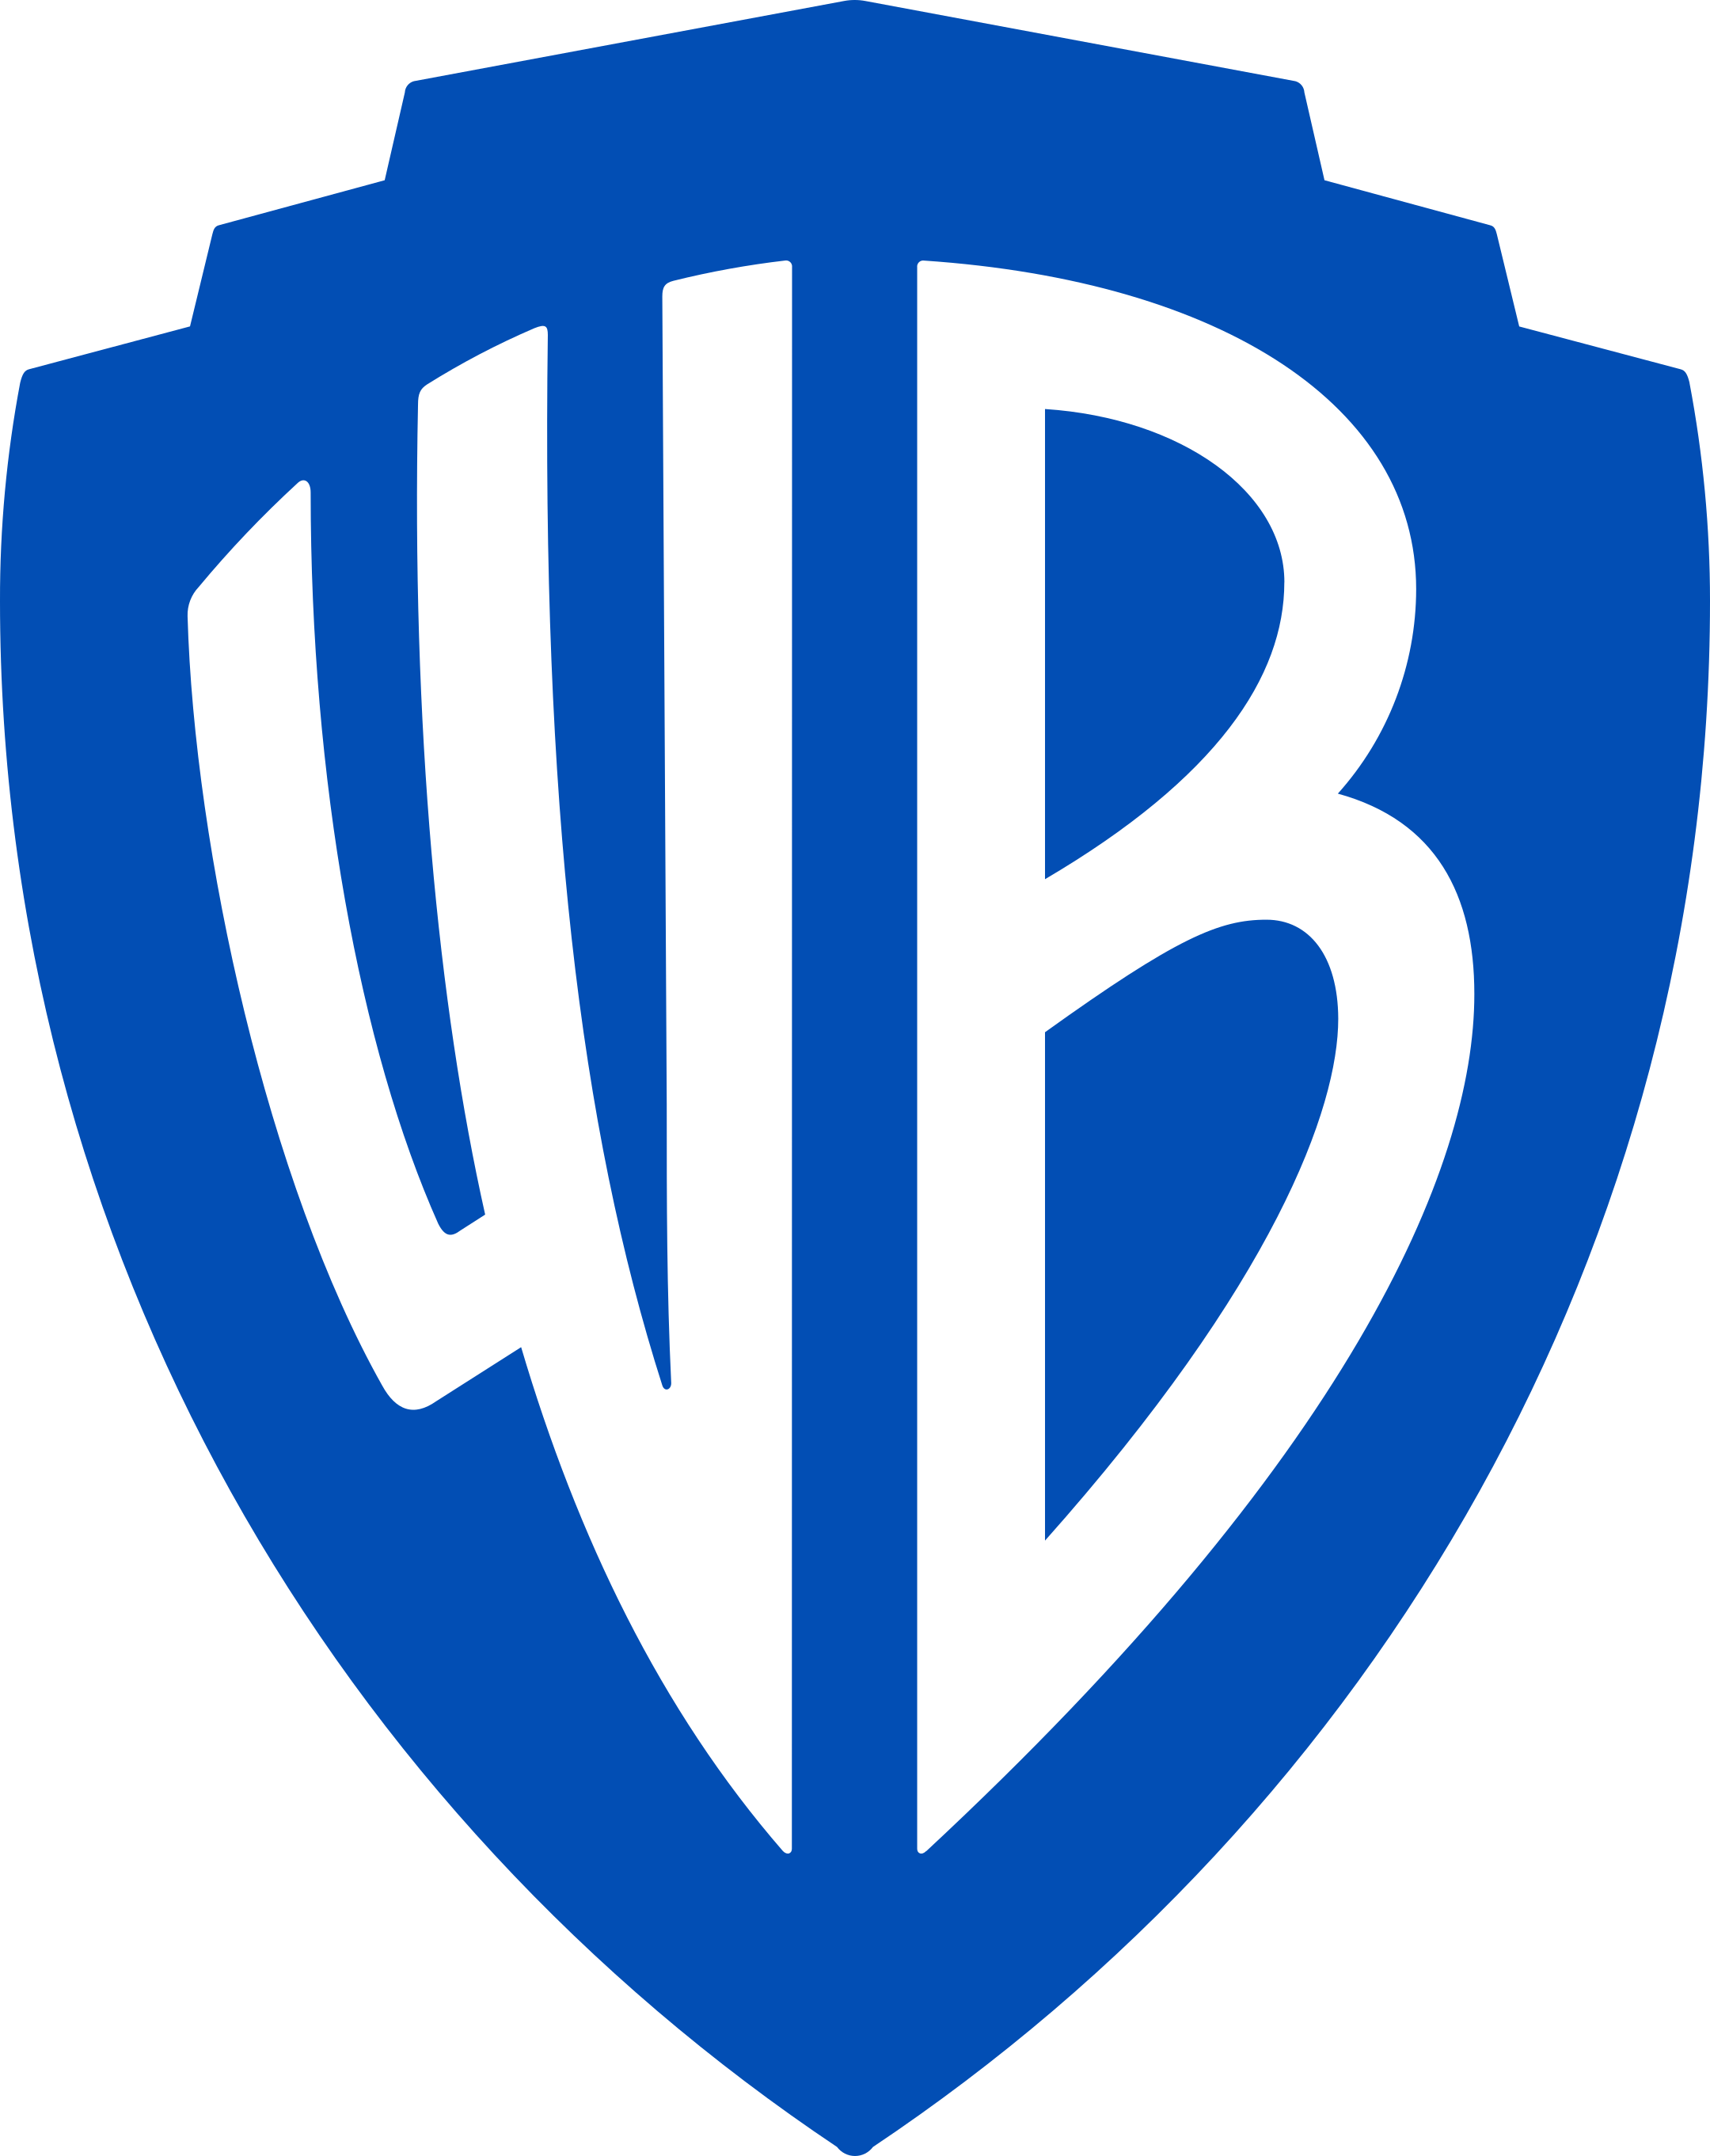 warner bros logo 1 1 - Warner Bros Logo